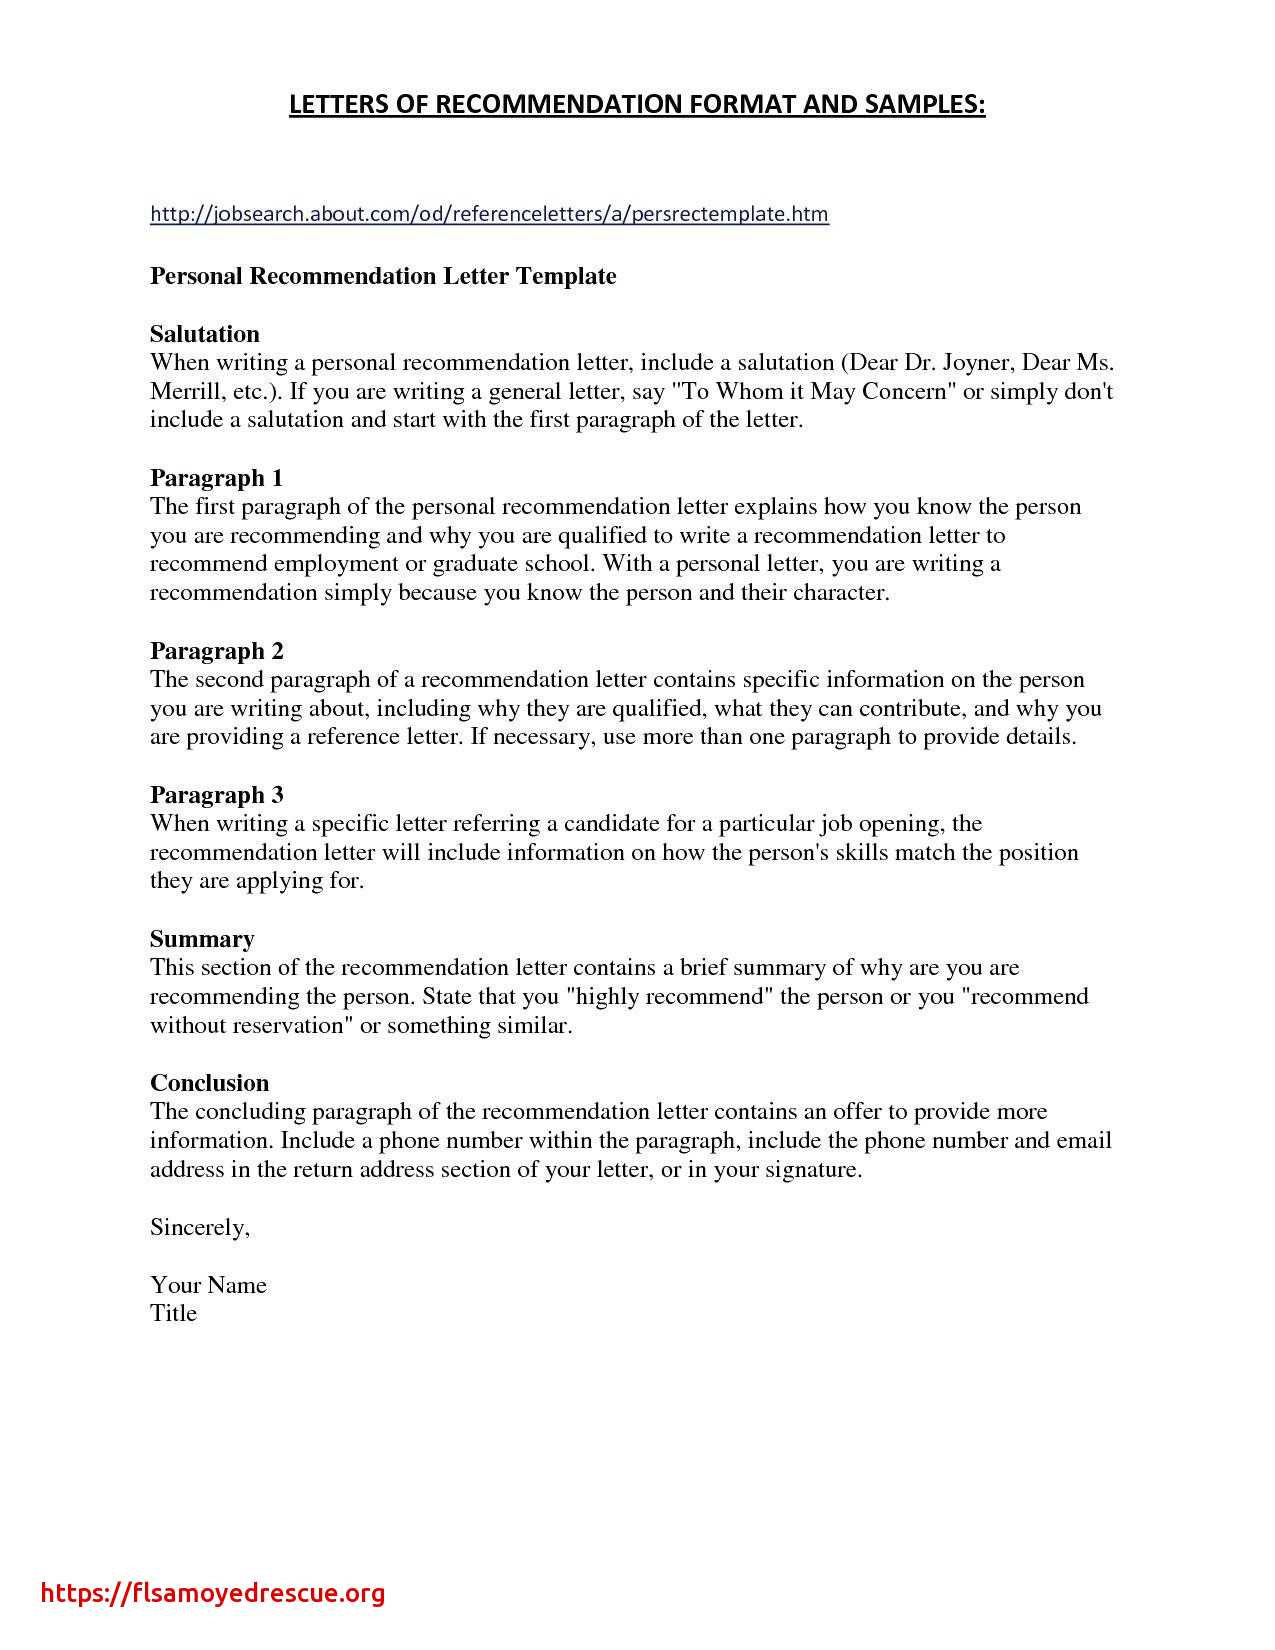 Letter Of Recommendation Template - Character Reference Letter Template Doc New Writing Letter Reference